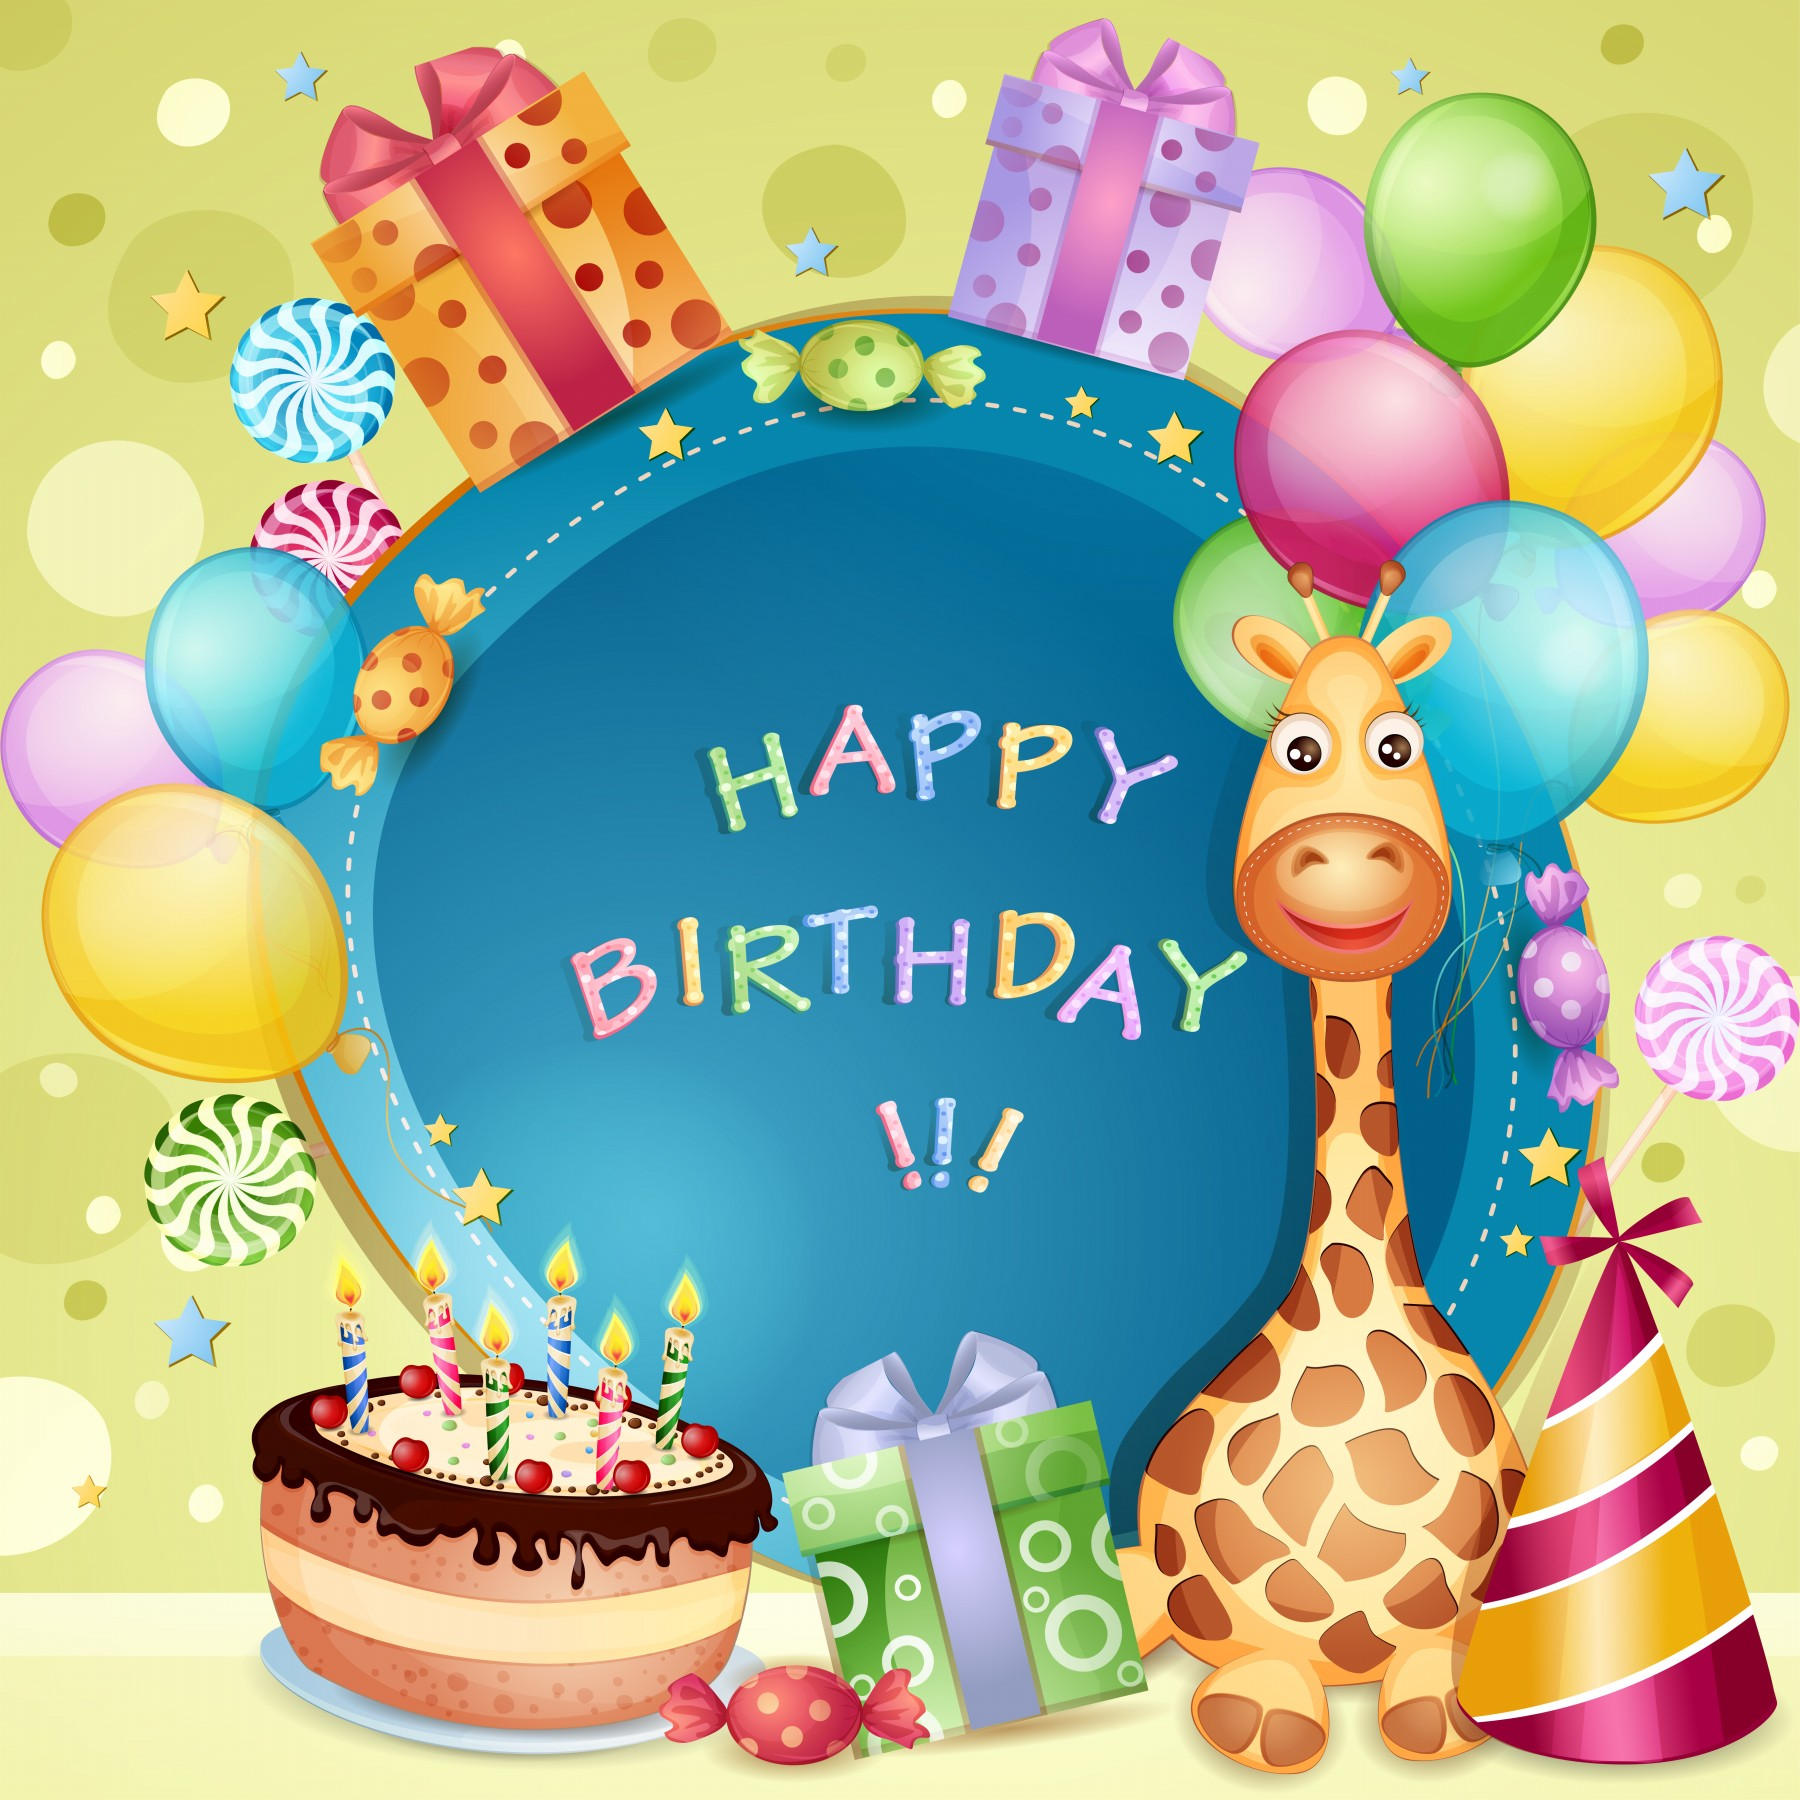 Free Birthday Cards gangcraftnet – Free Birthday E Cards